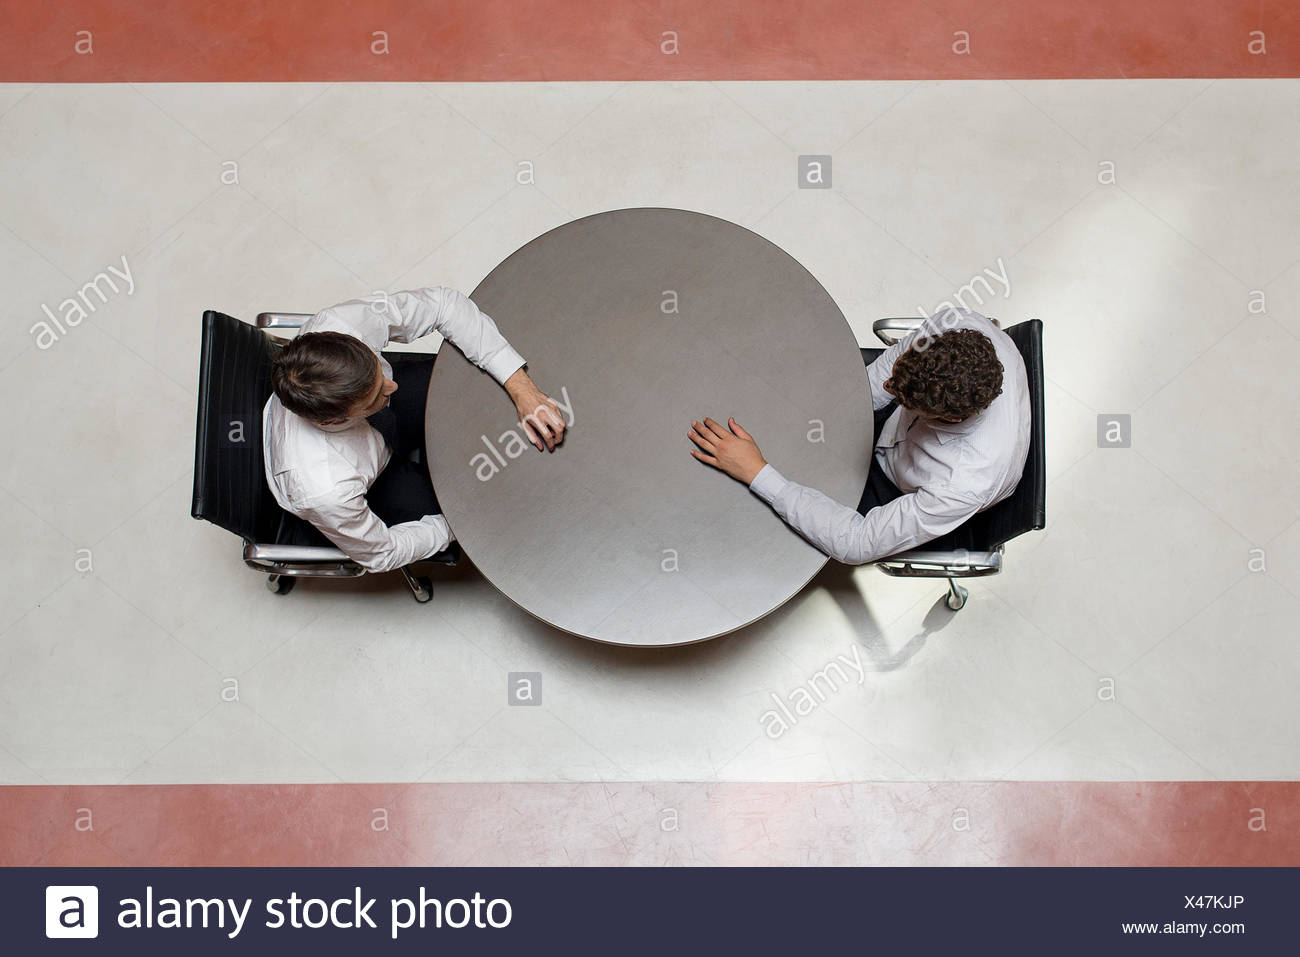 Businessmen stting opposite each other - Stock Image